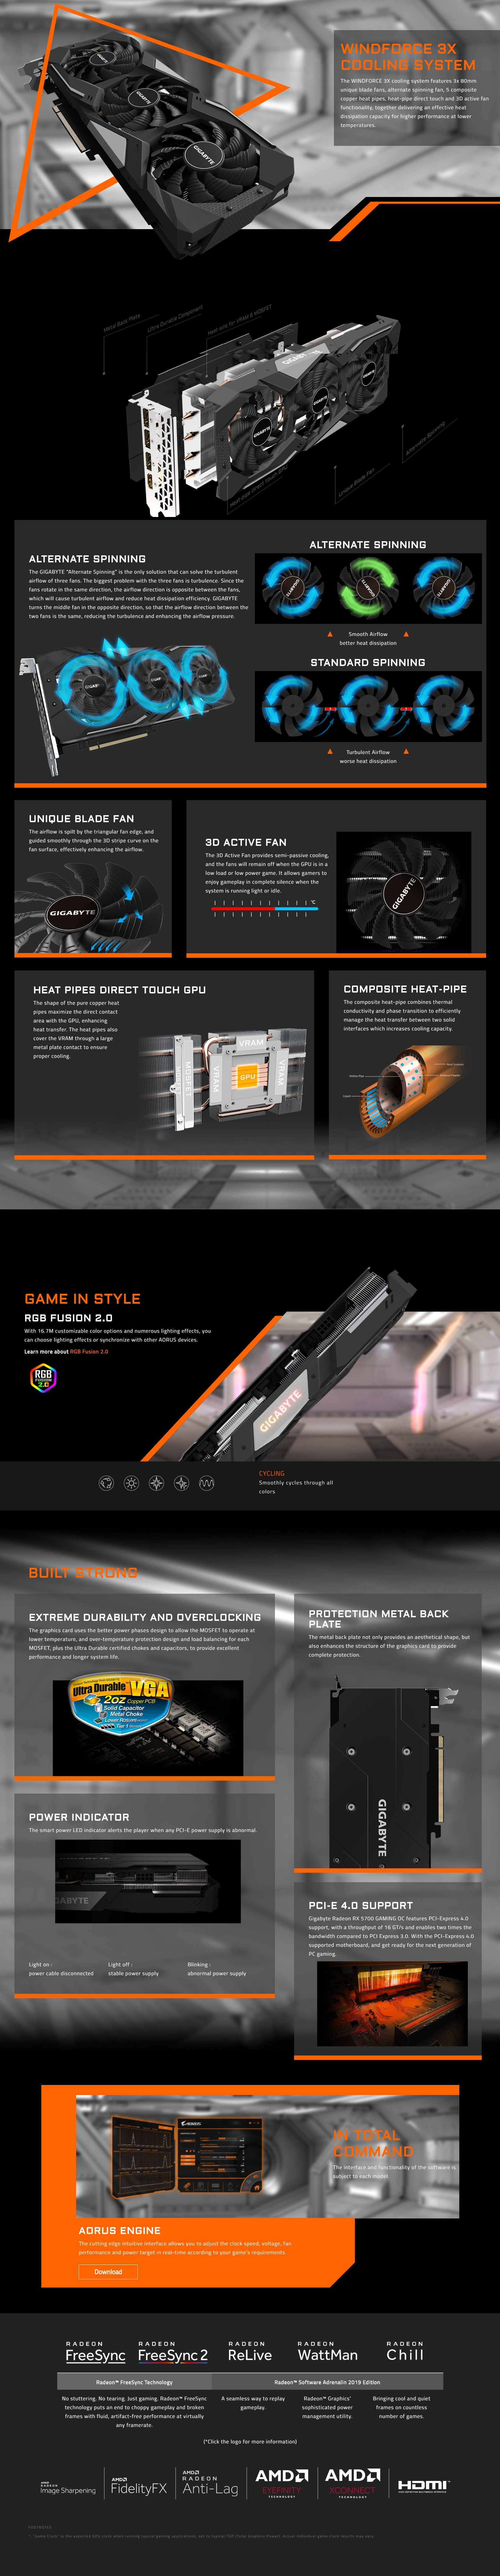 A large marketing image providing additional information about the product Gigabyte Radeon RX 5700 XT GAMING OC 8G - Additional alt info not provided